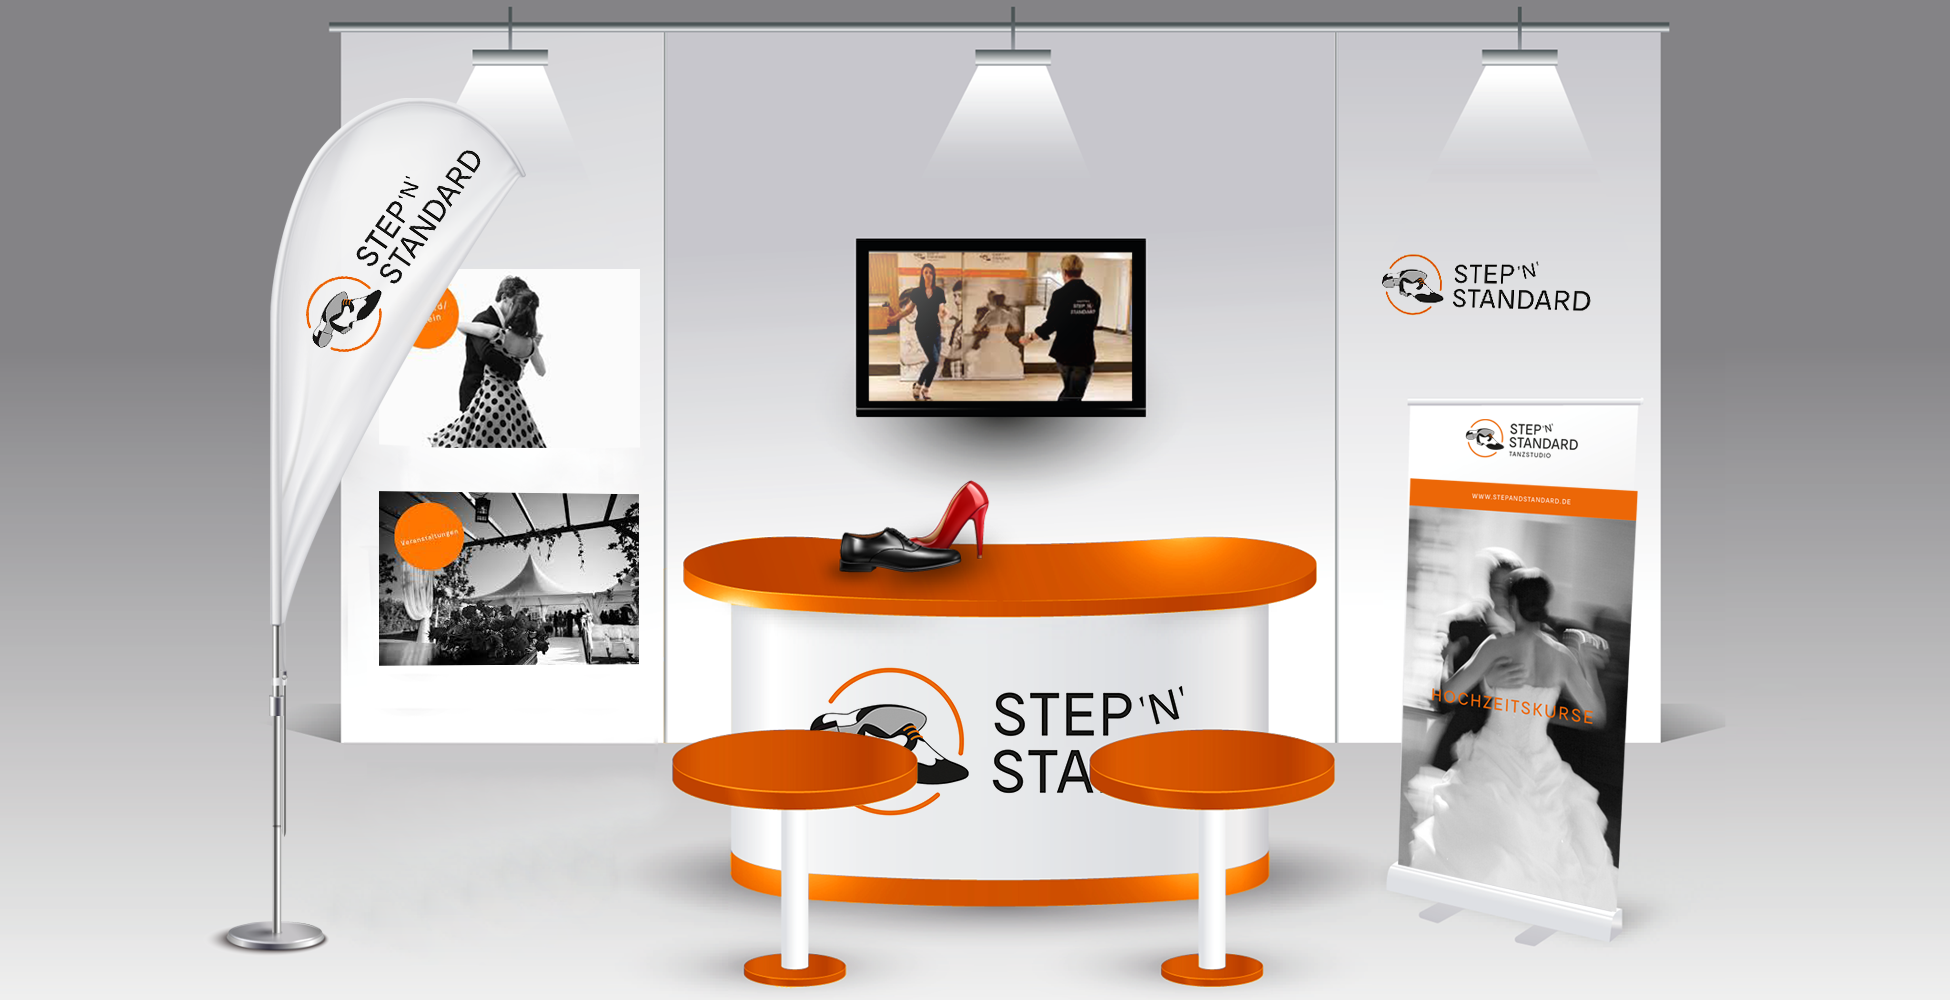 StepandStandard_Messestand_NEU